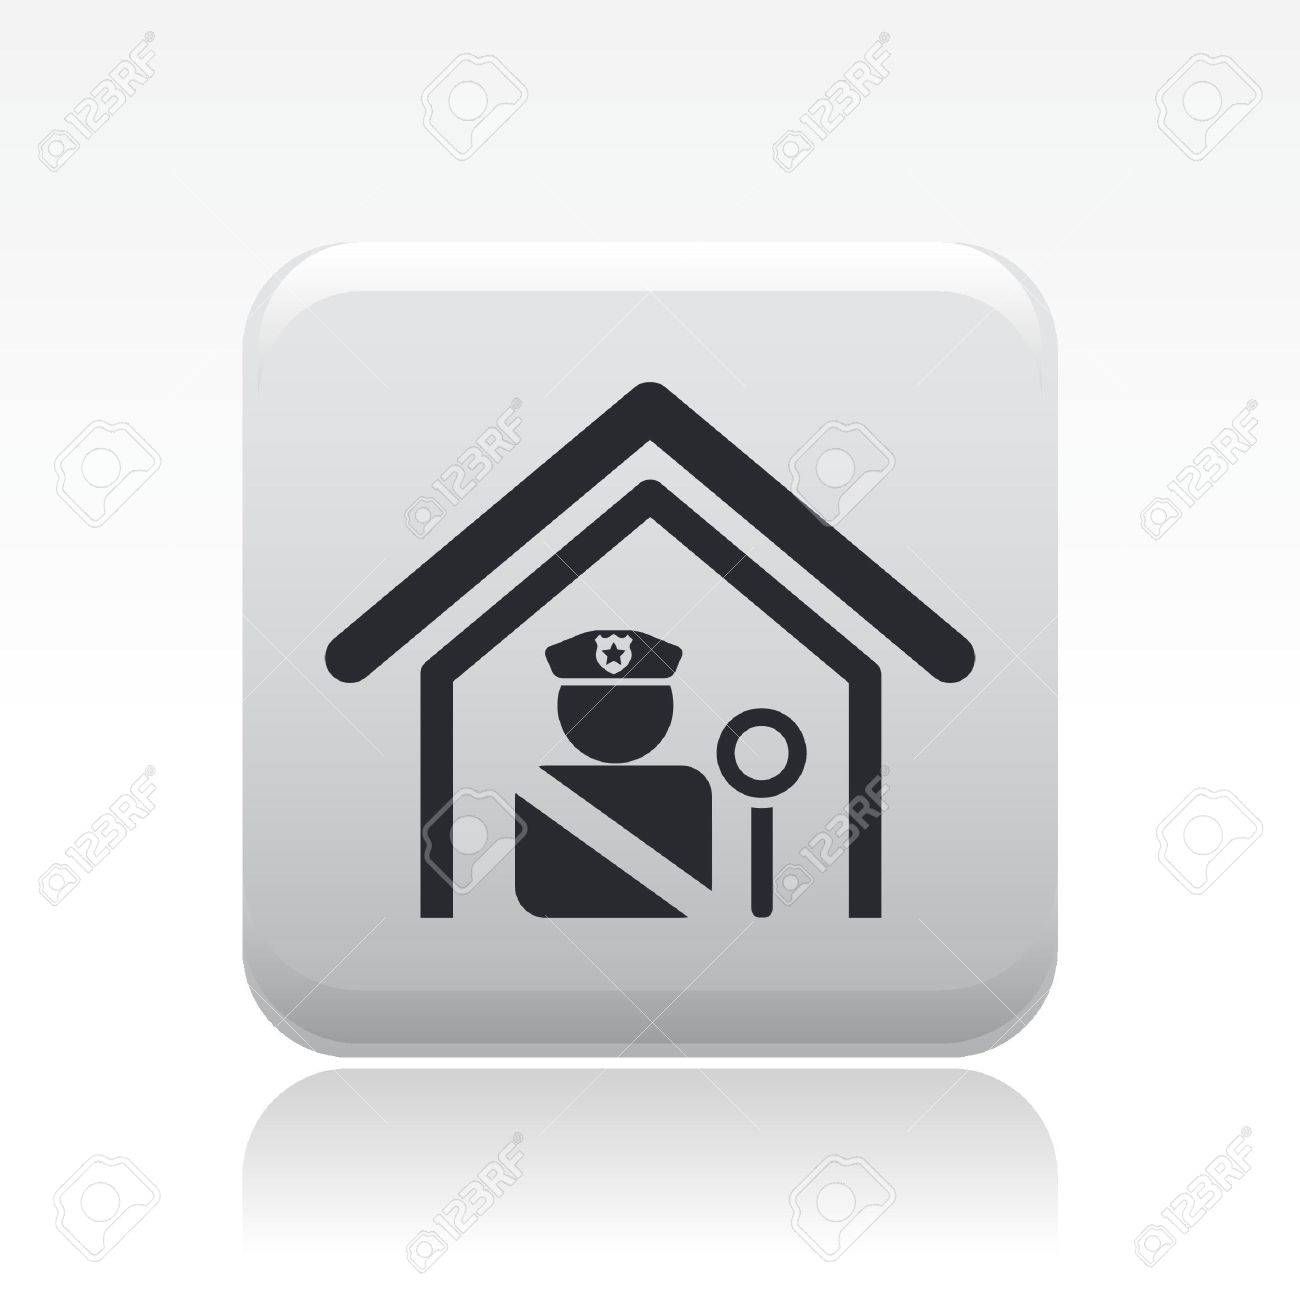 Vector illustration of single isolated police station icon Stock Vector - 12126909